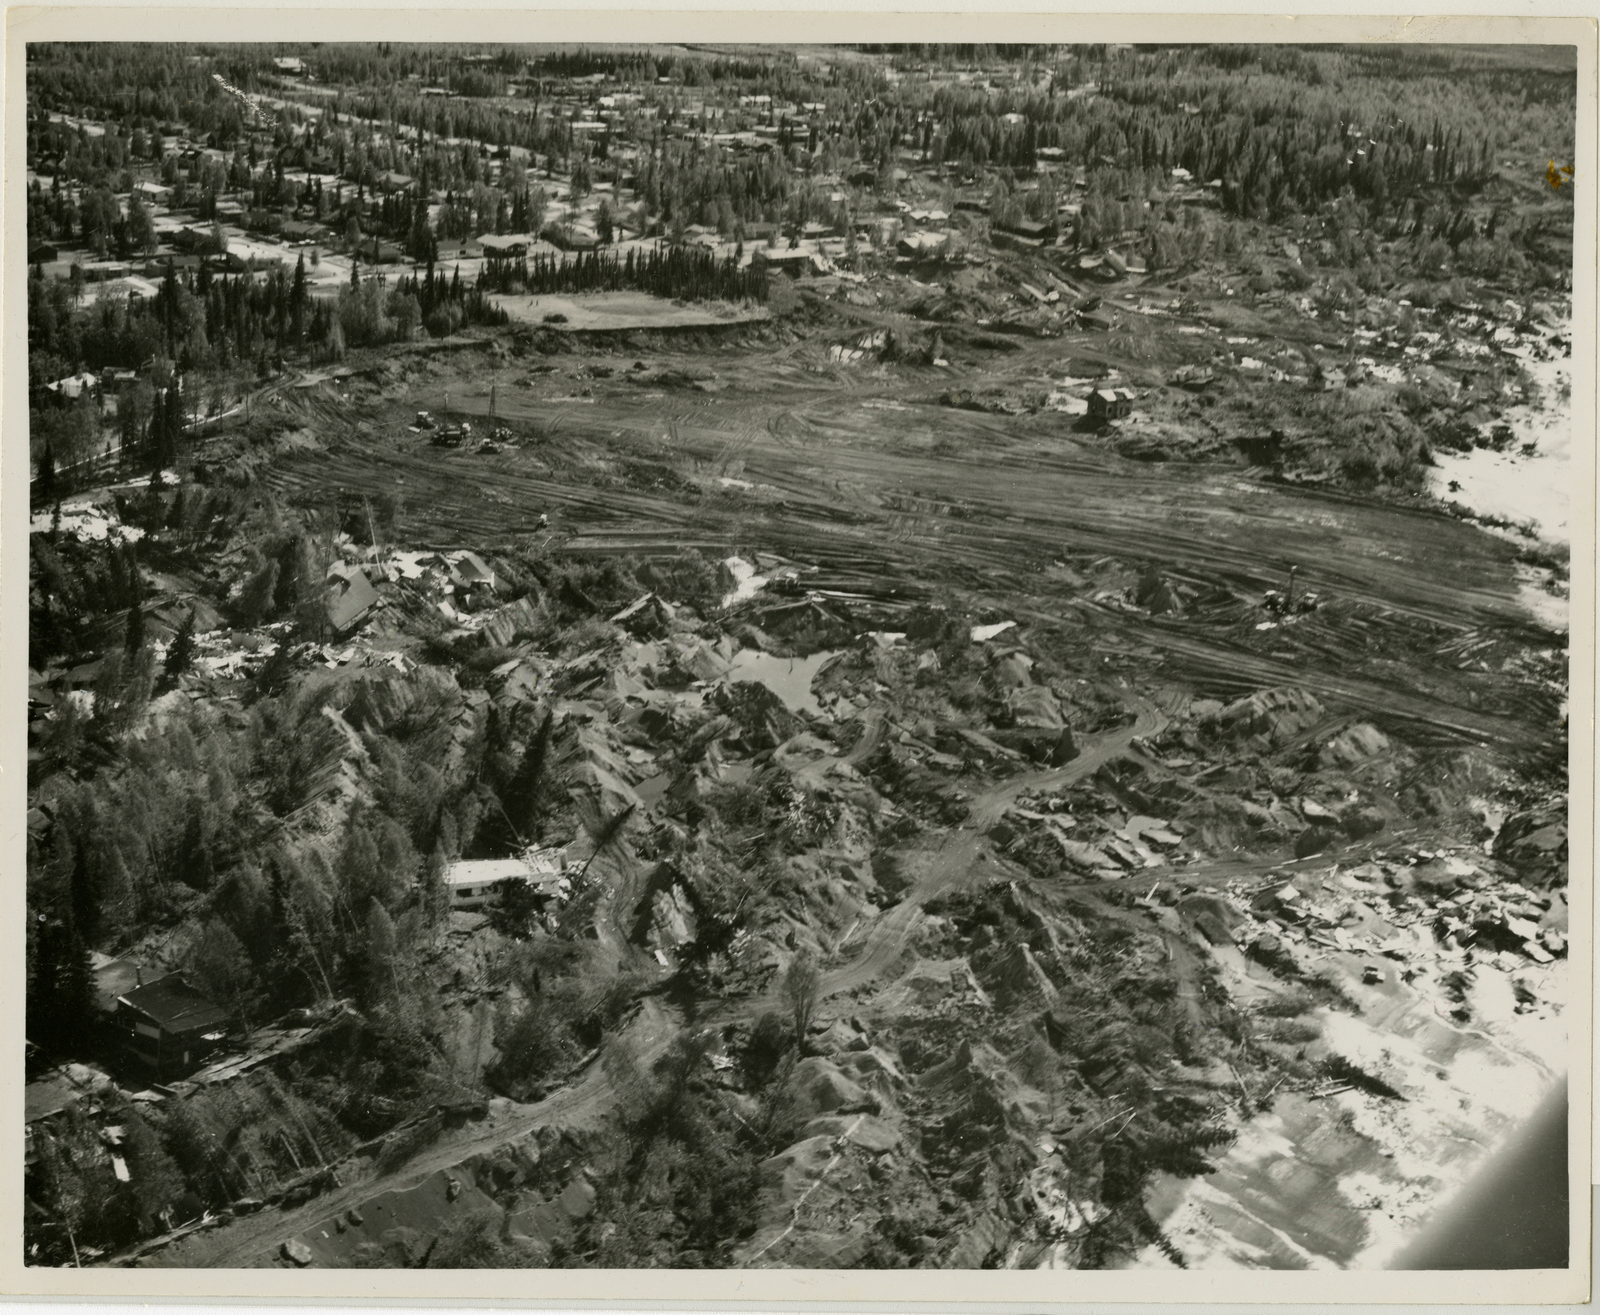 Contract 64-68 Turnagain Debris removal and area grading, Contractor Walsh and Company, 11 June 1964, photo by Tice, looking southwest, vicinity of Lynnary park